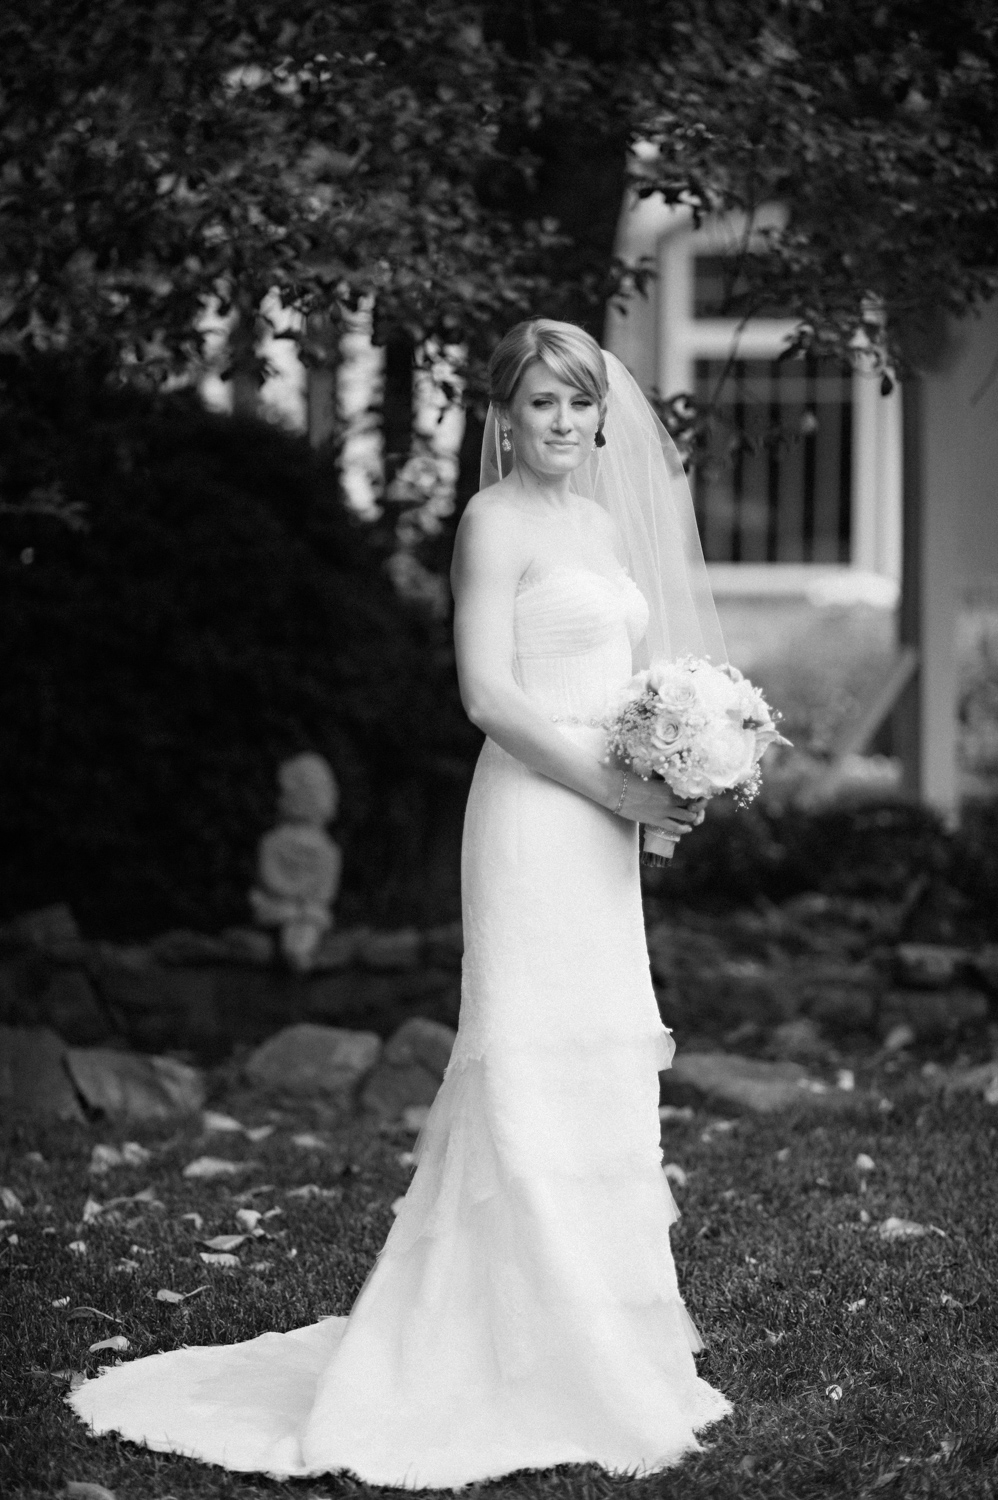 david-malament-photography-fiore-wedding-033.jpg